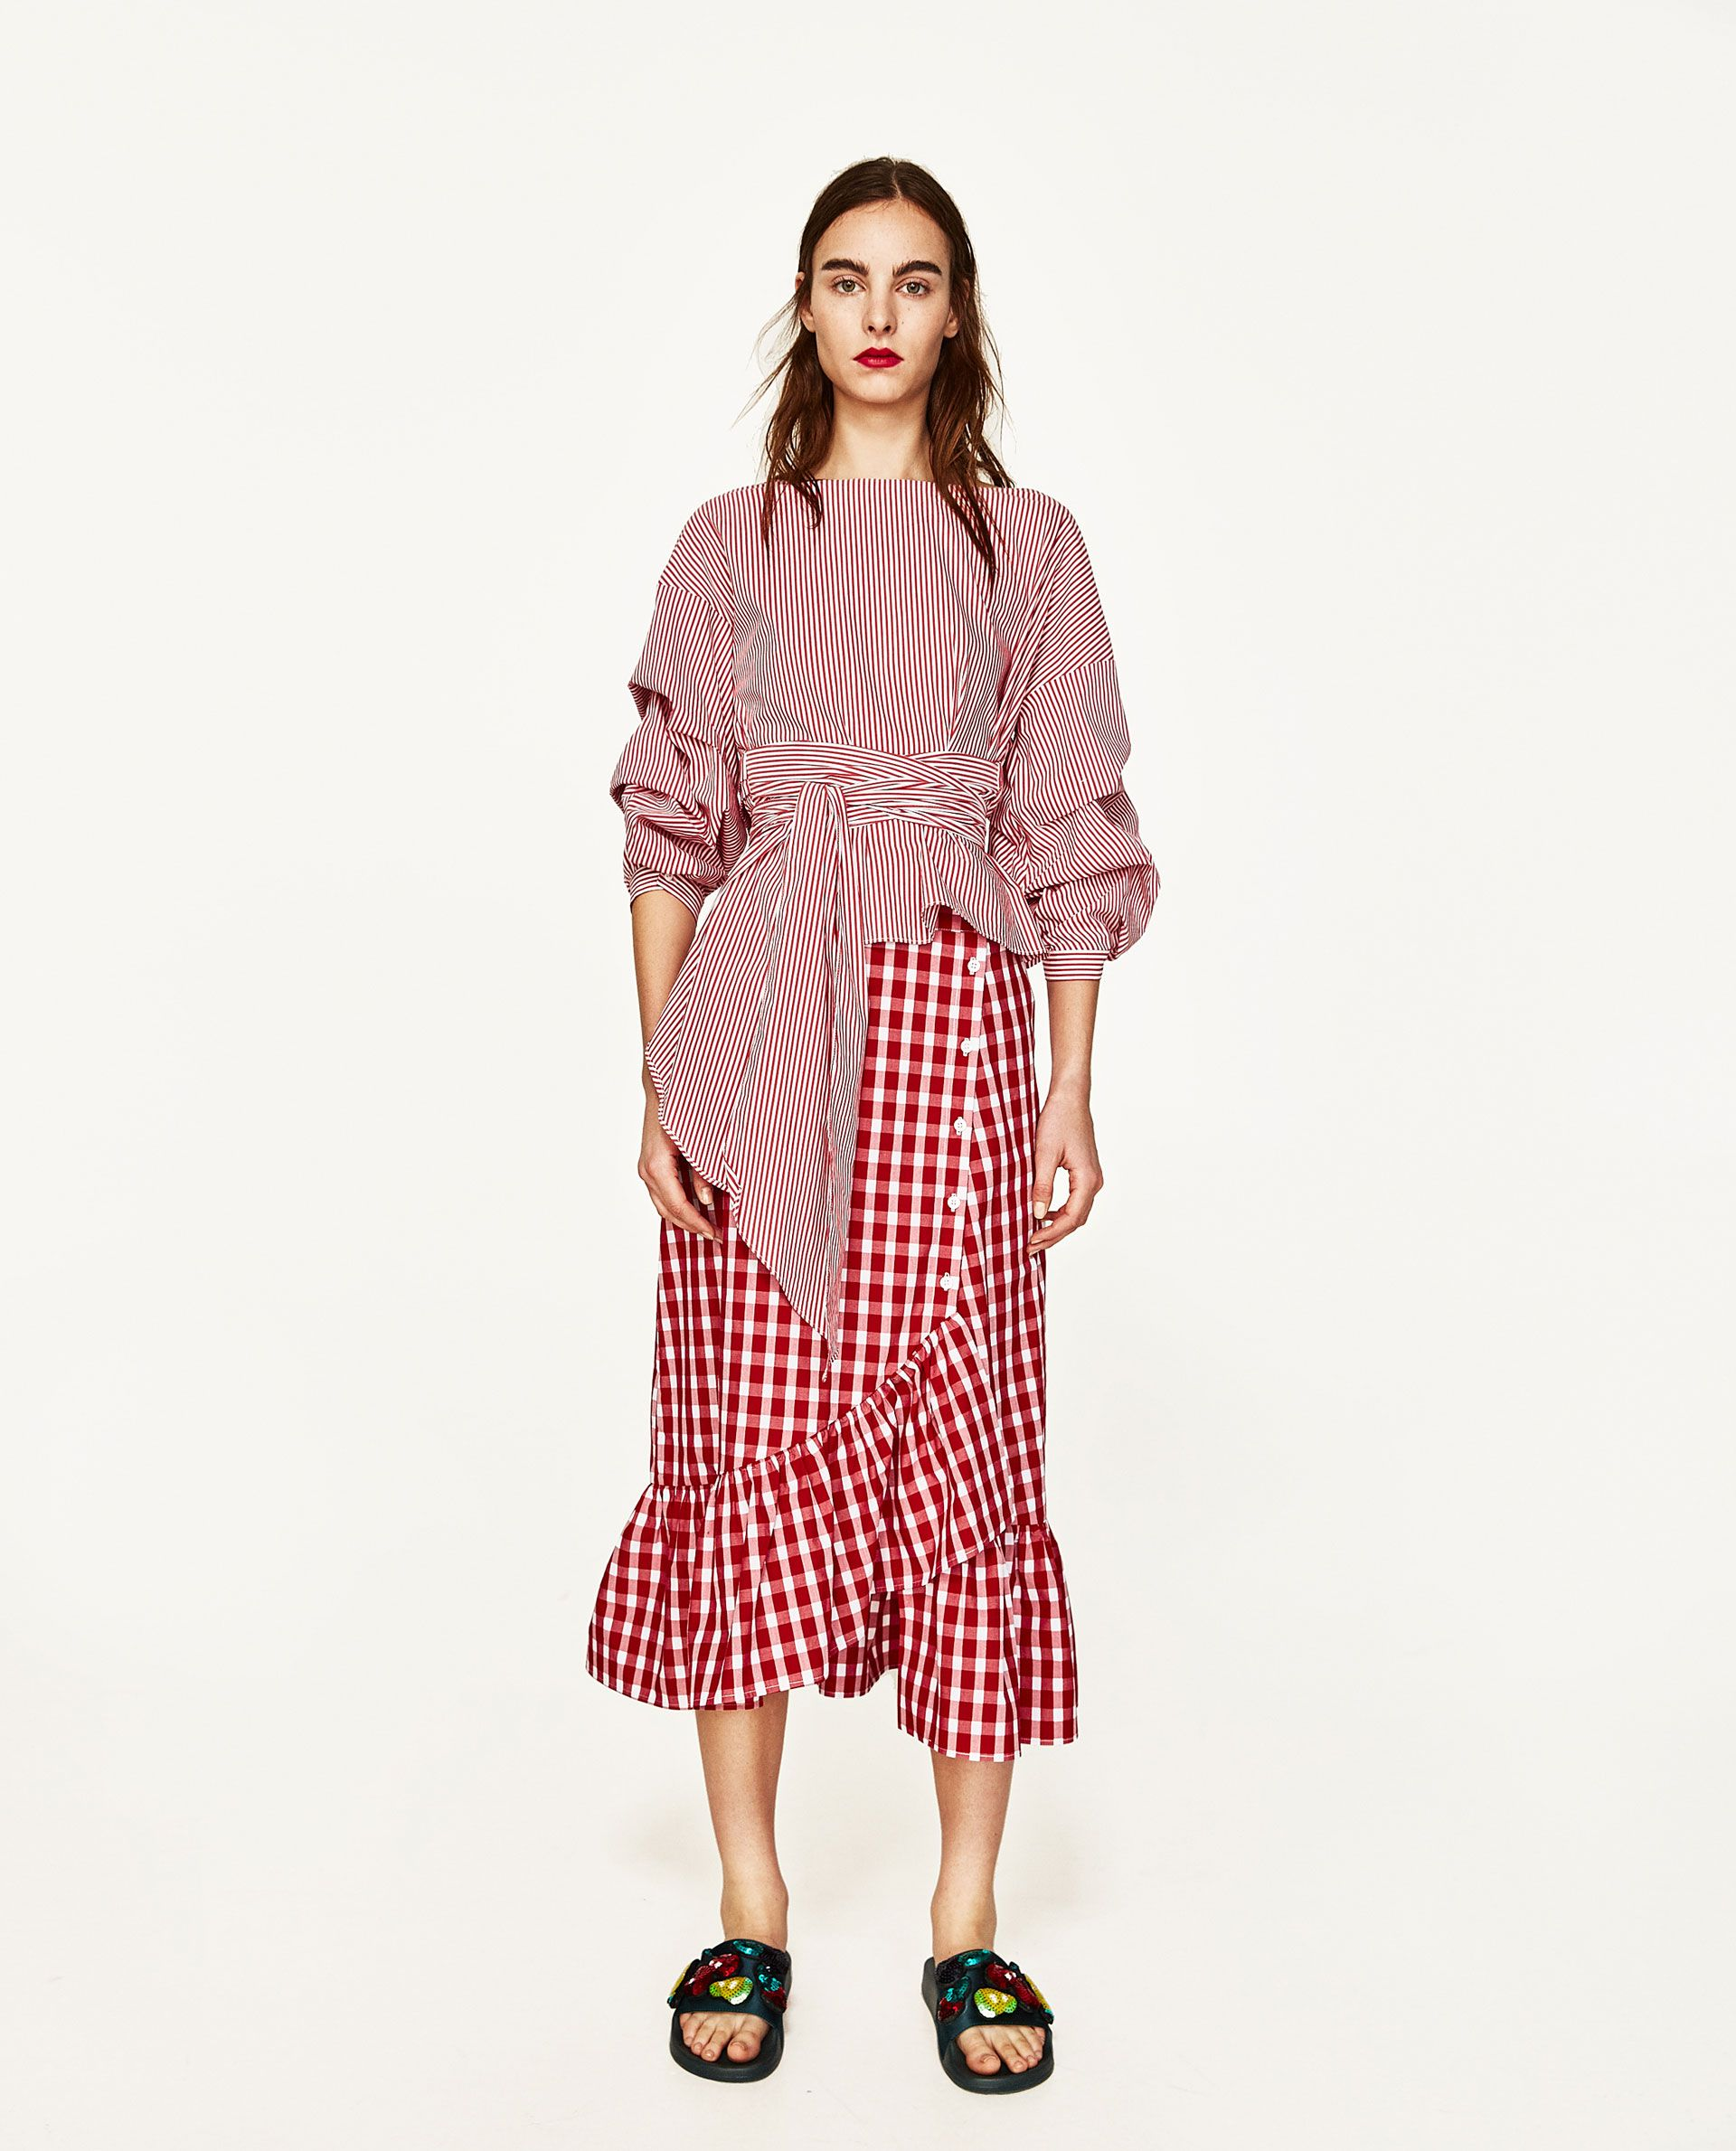 ZARA - WOMAN - GINGHAM FRILLED SKIRT Zara Outfit, Spring Fashion 2017,  Gingham Skirt b3eec856399